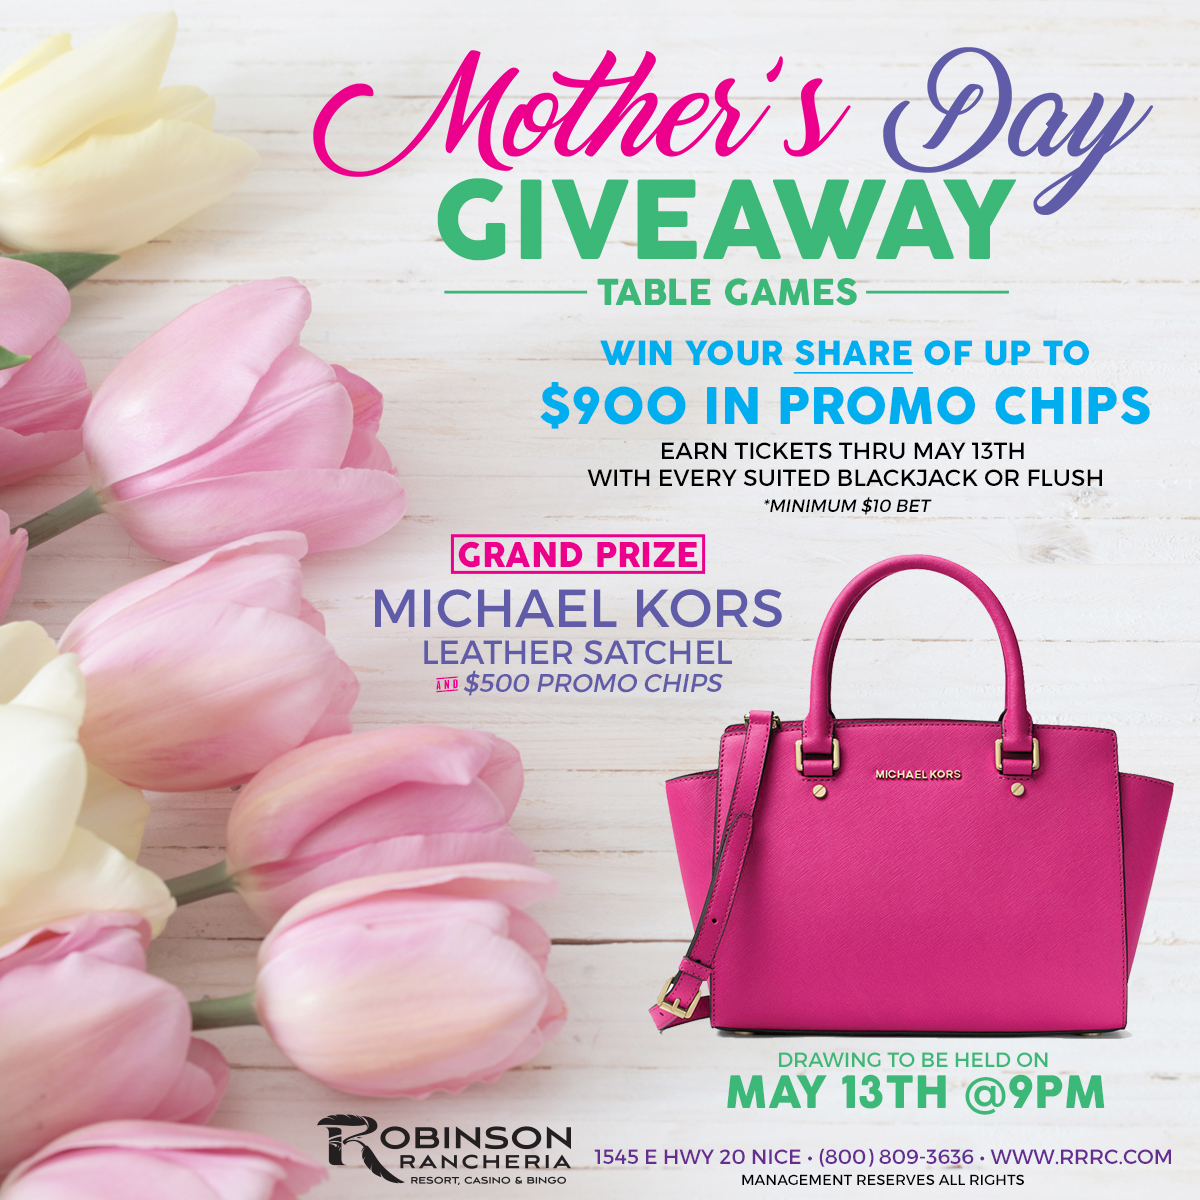 MothersDay-Giveaway